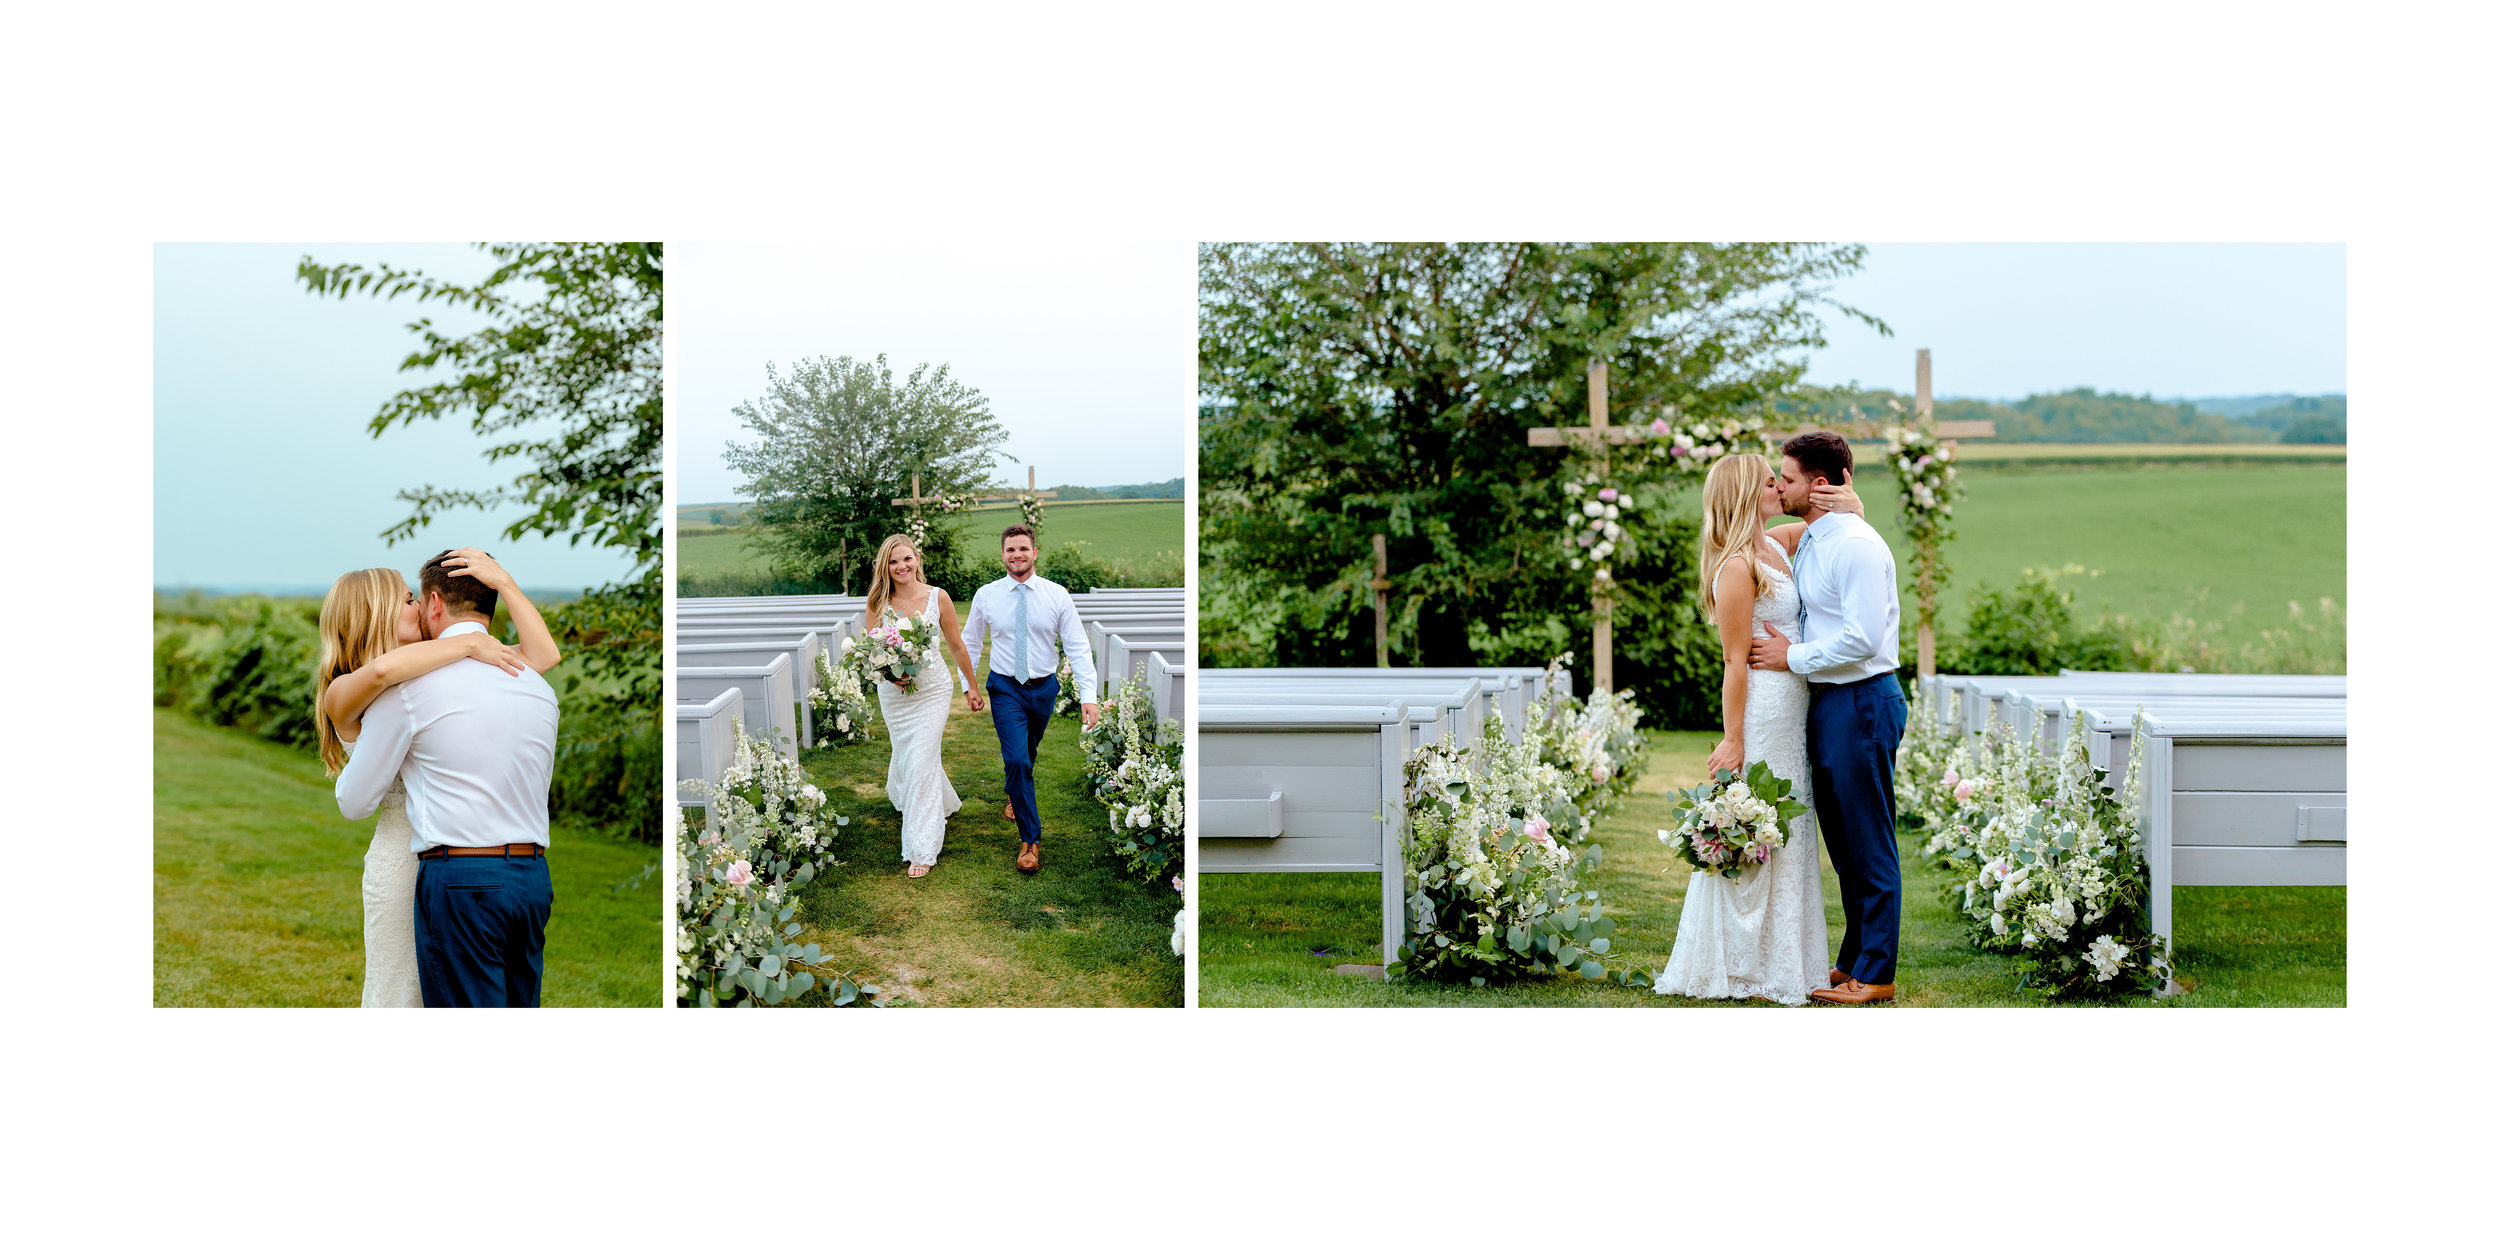 Ashley + Justin - Wedding Album_31.jpg